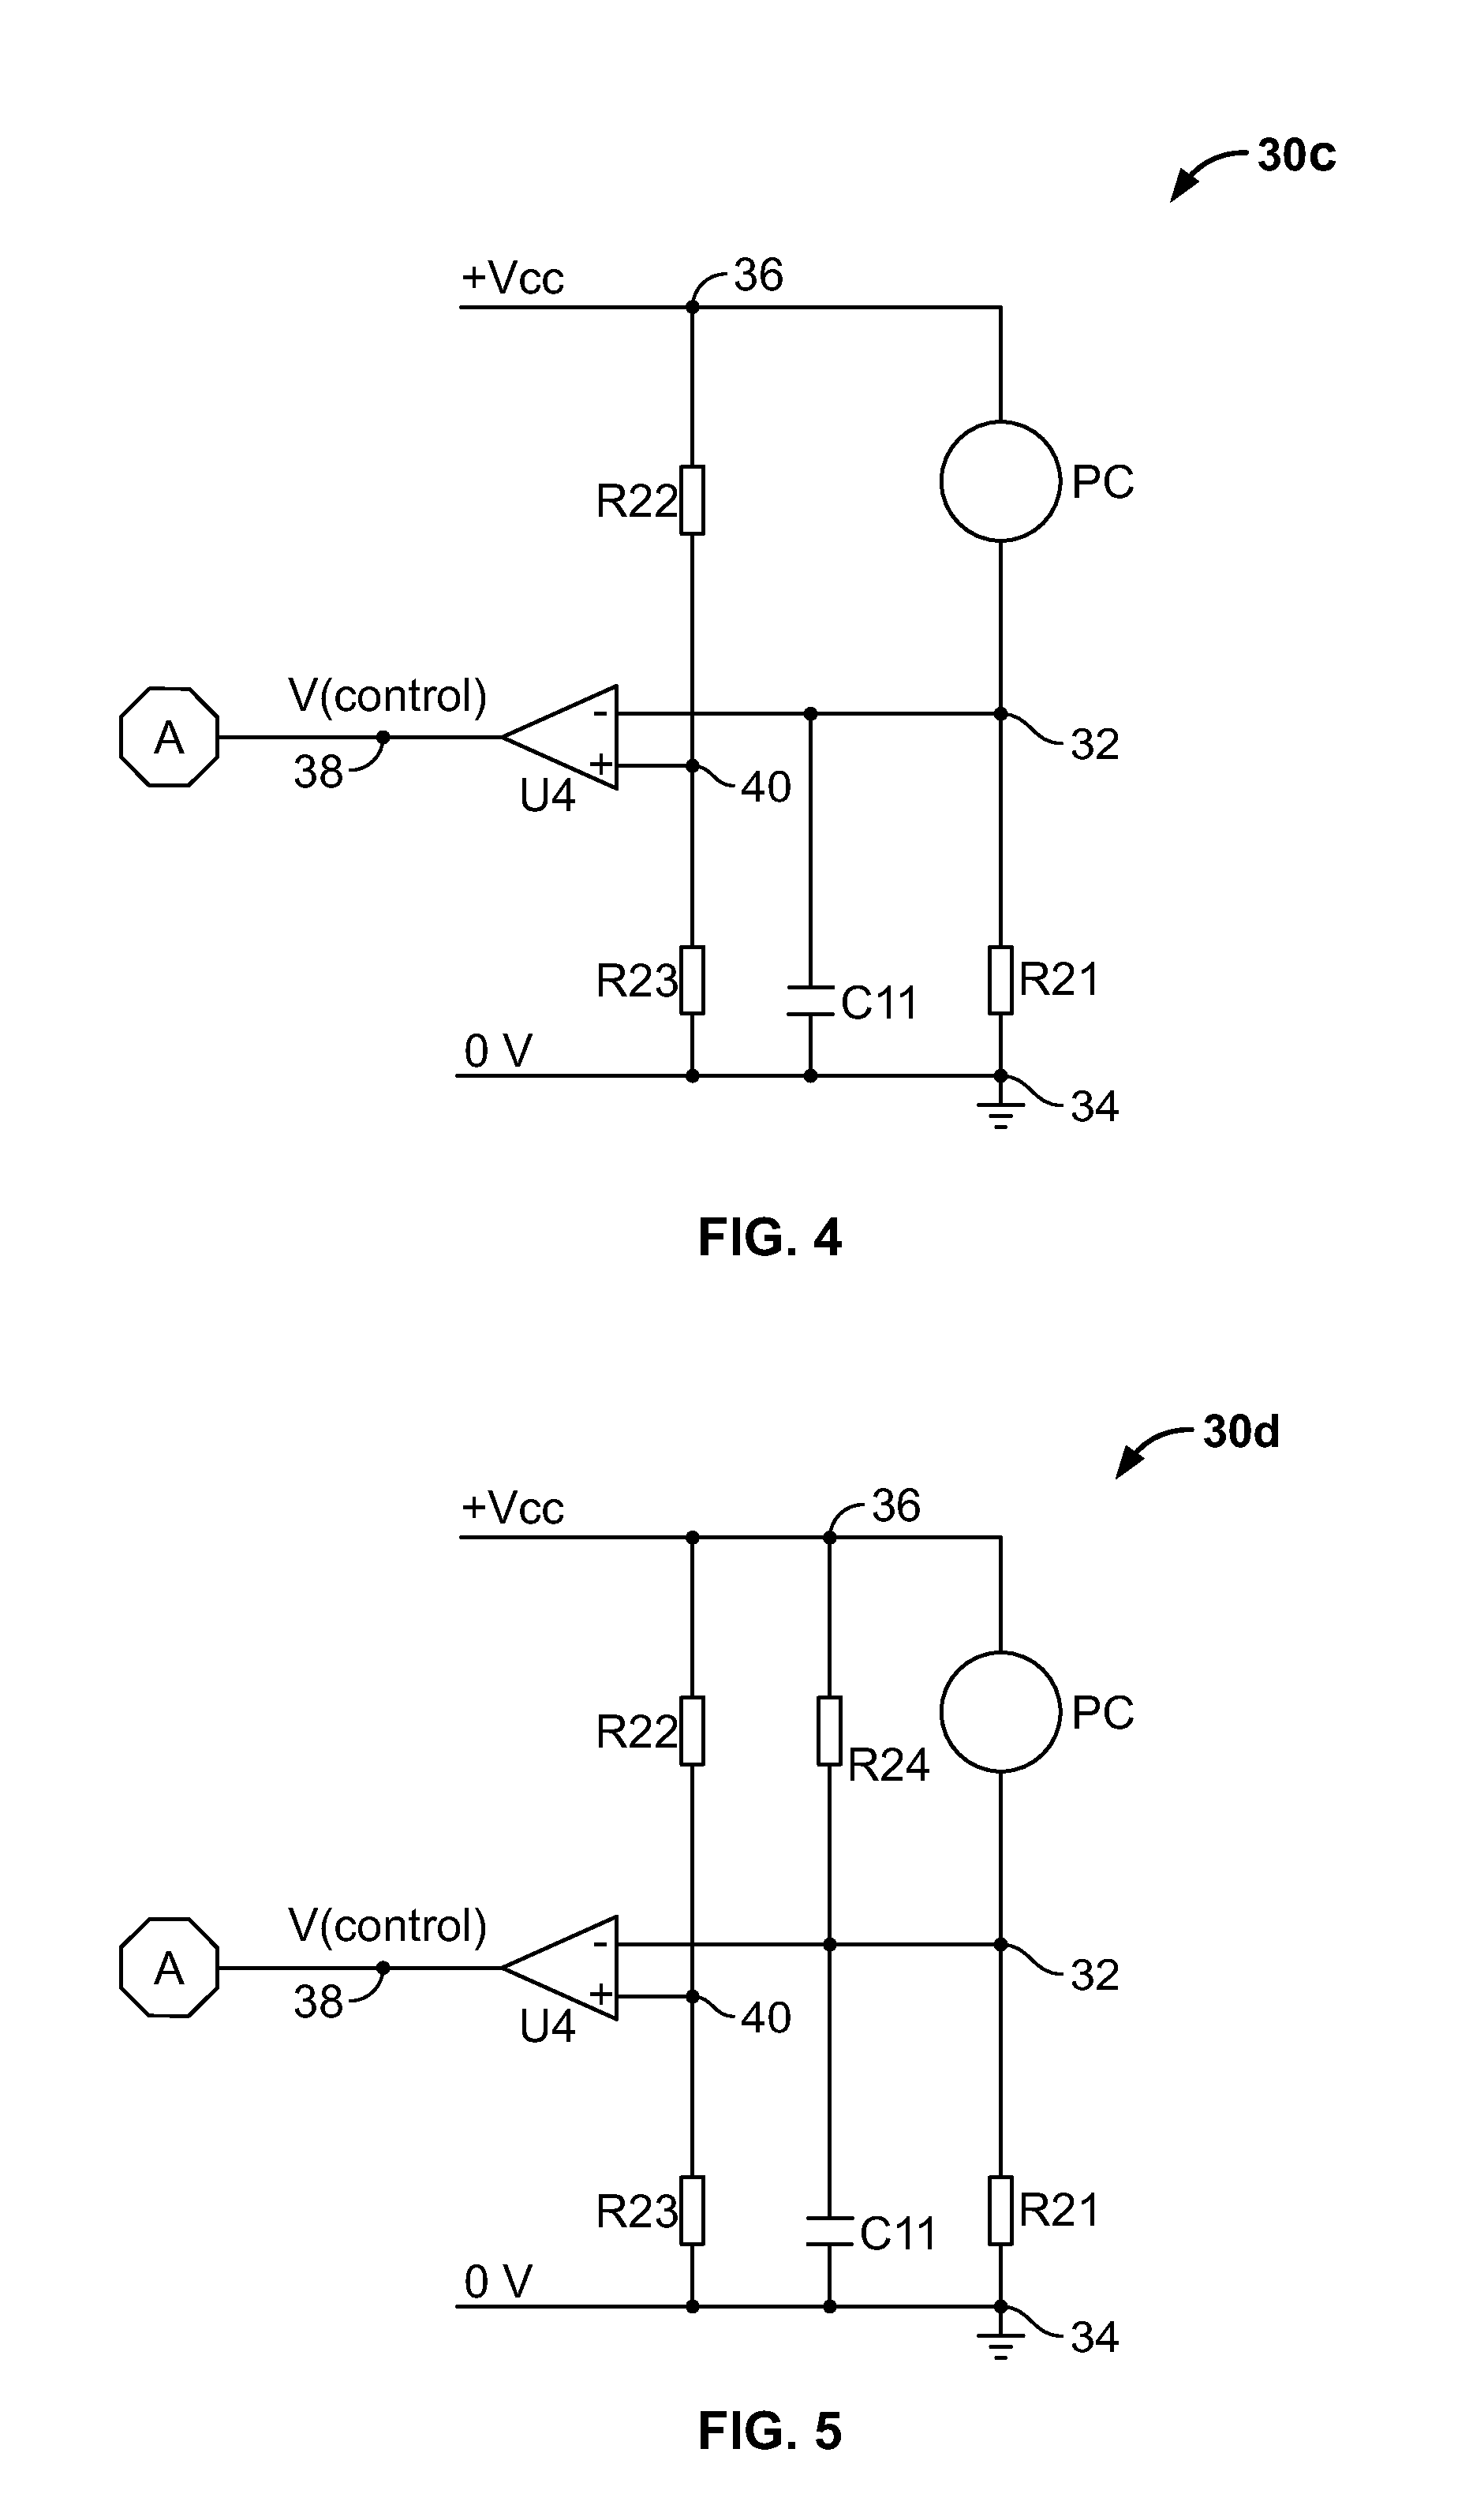 Photocell Wiring Diagram For Led Light 2 Wire A Brevet Us20120319591 Controlled Driver Circuit On